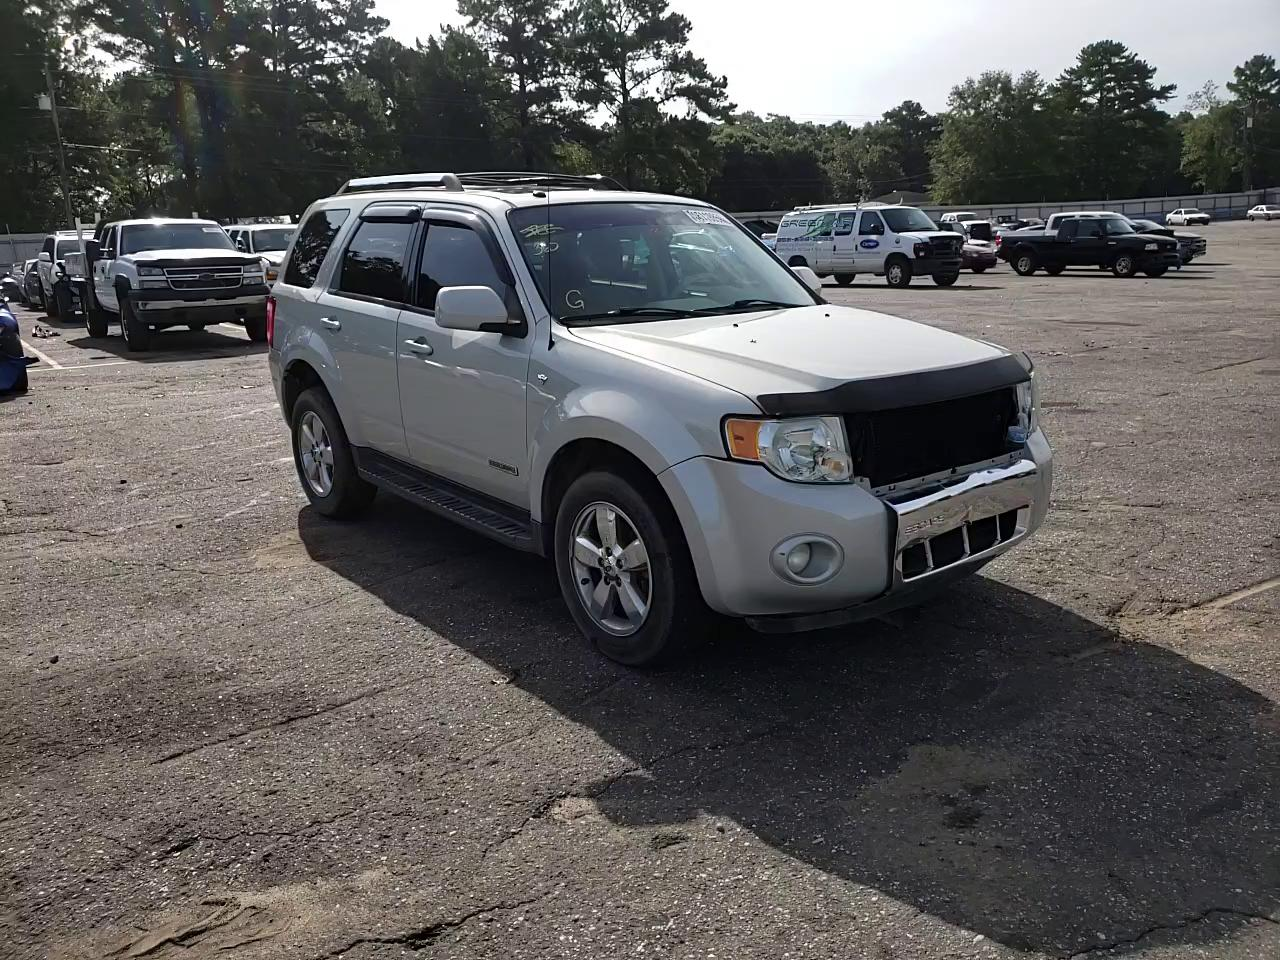 Ford Escape LIM salvage cars for sale: 2008 Ford Escape LIM